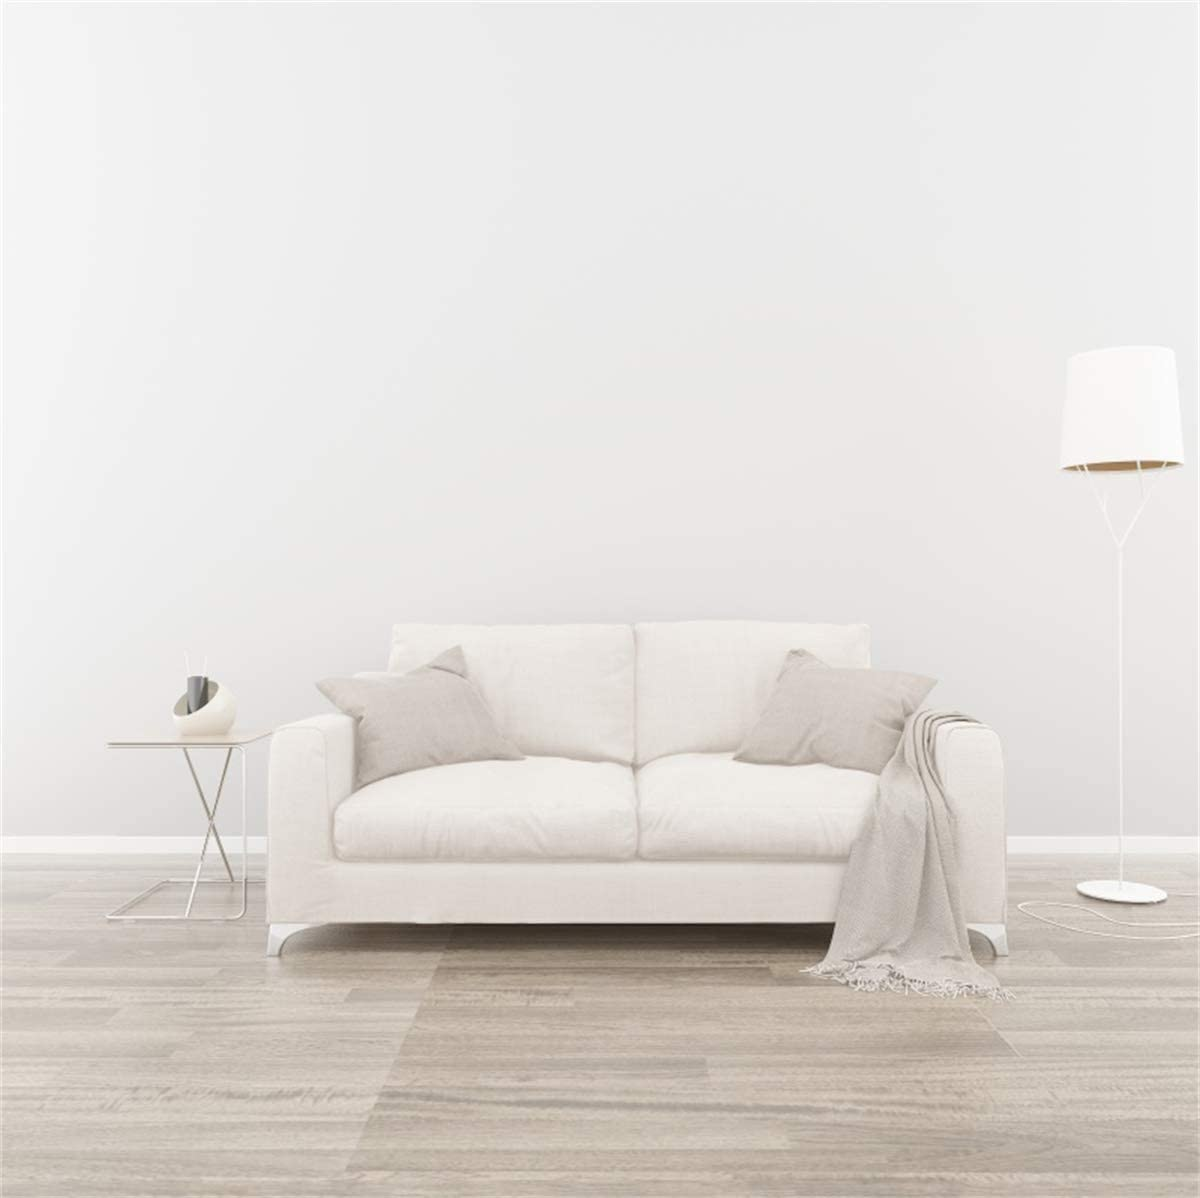 Amazon Com Yeele Simple Living Room Interior Photography Backdrop 6 5x6 5ft White Room Wall With Sofa Background Modern House And Home Design Cozy Apartment Kids Adult Portrait Photo Studio Props Wallpaper Camera